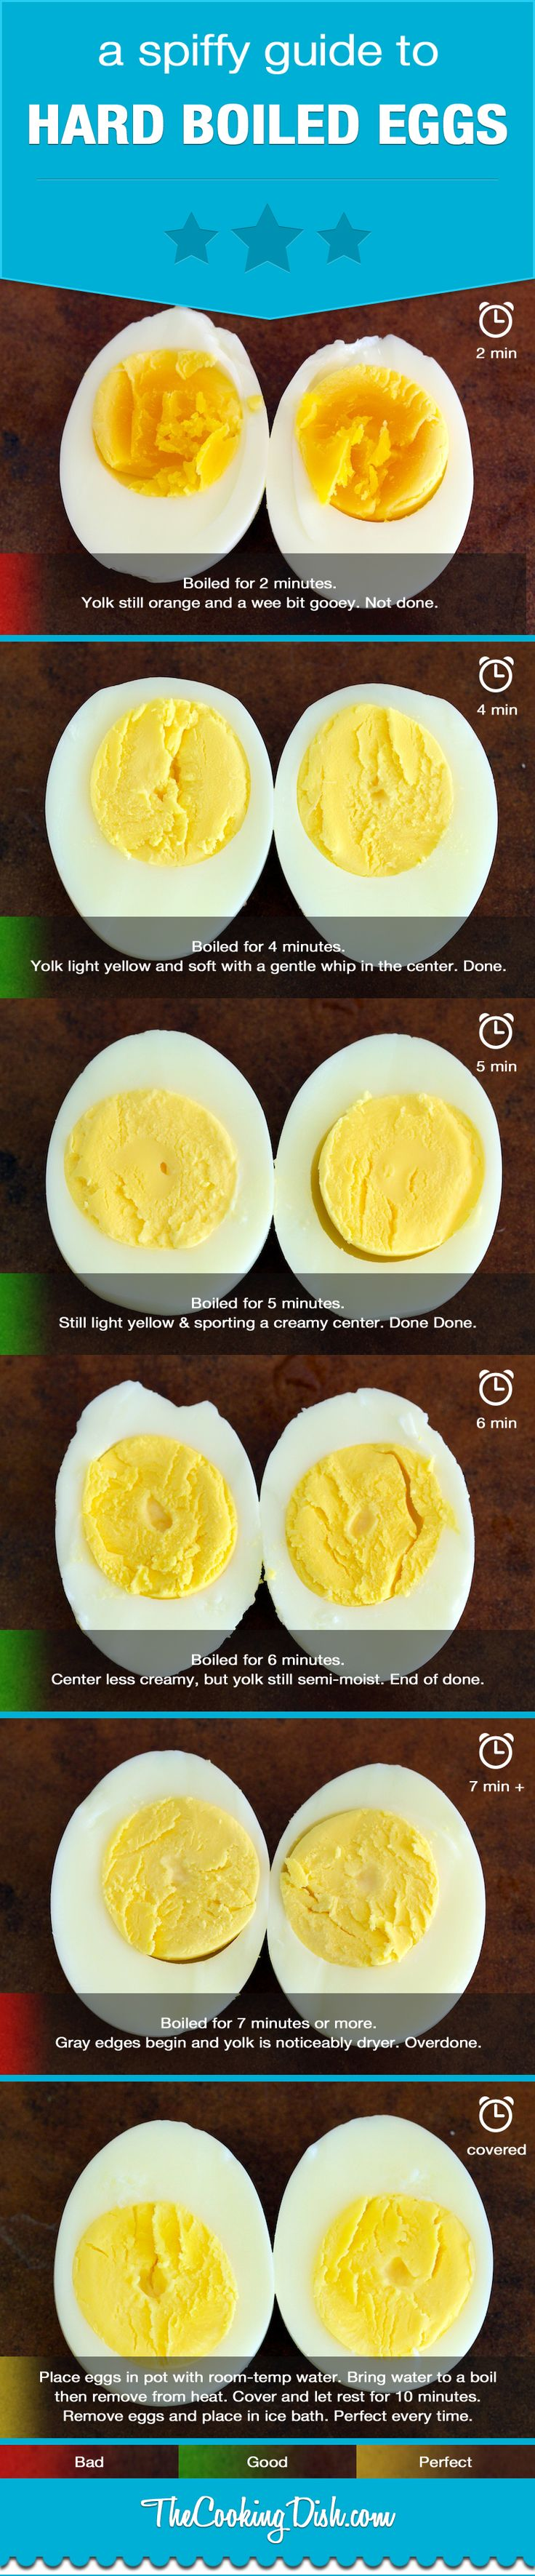 How to hard boil an egg, and Easy how to peal a hard boiled egg instructions. Not to mention the eggs are just super cute. how-to-hard-boil-an-egg-infographic-the-cooking-dish